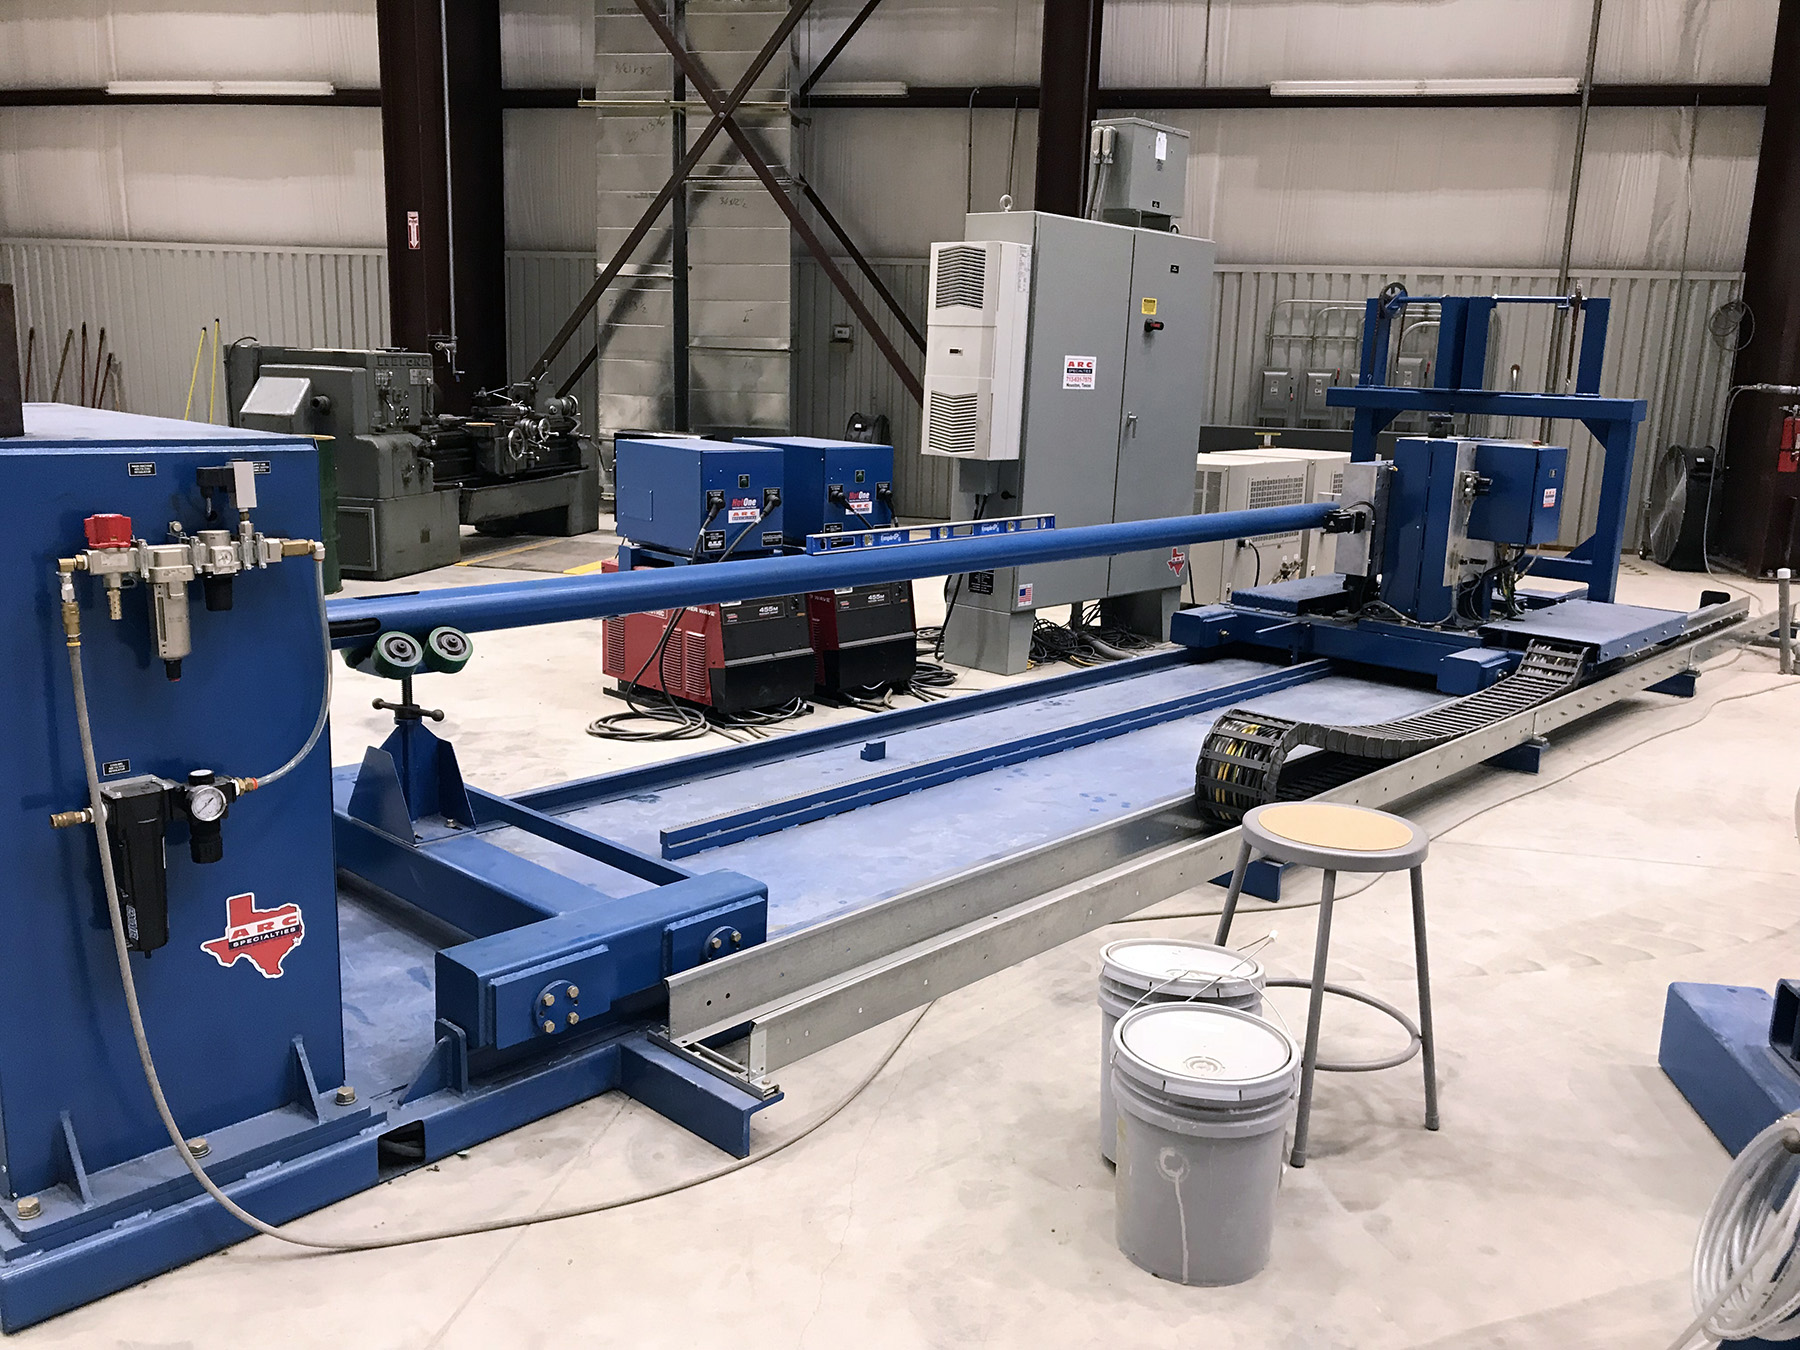 USED, ARC SPECIALTIES 10' ID PIPE CLADDING SYSTEM